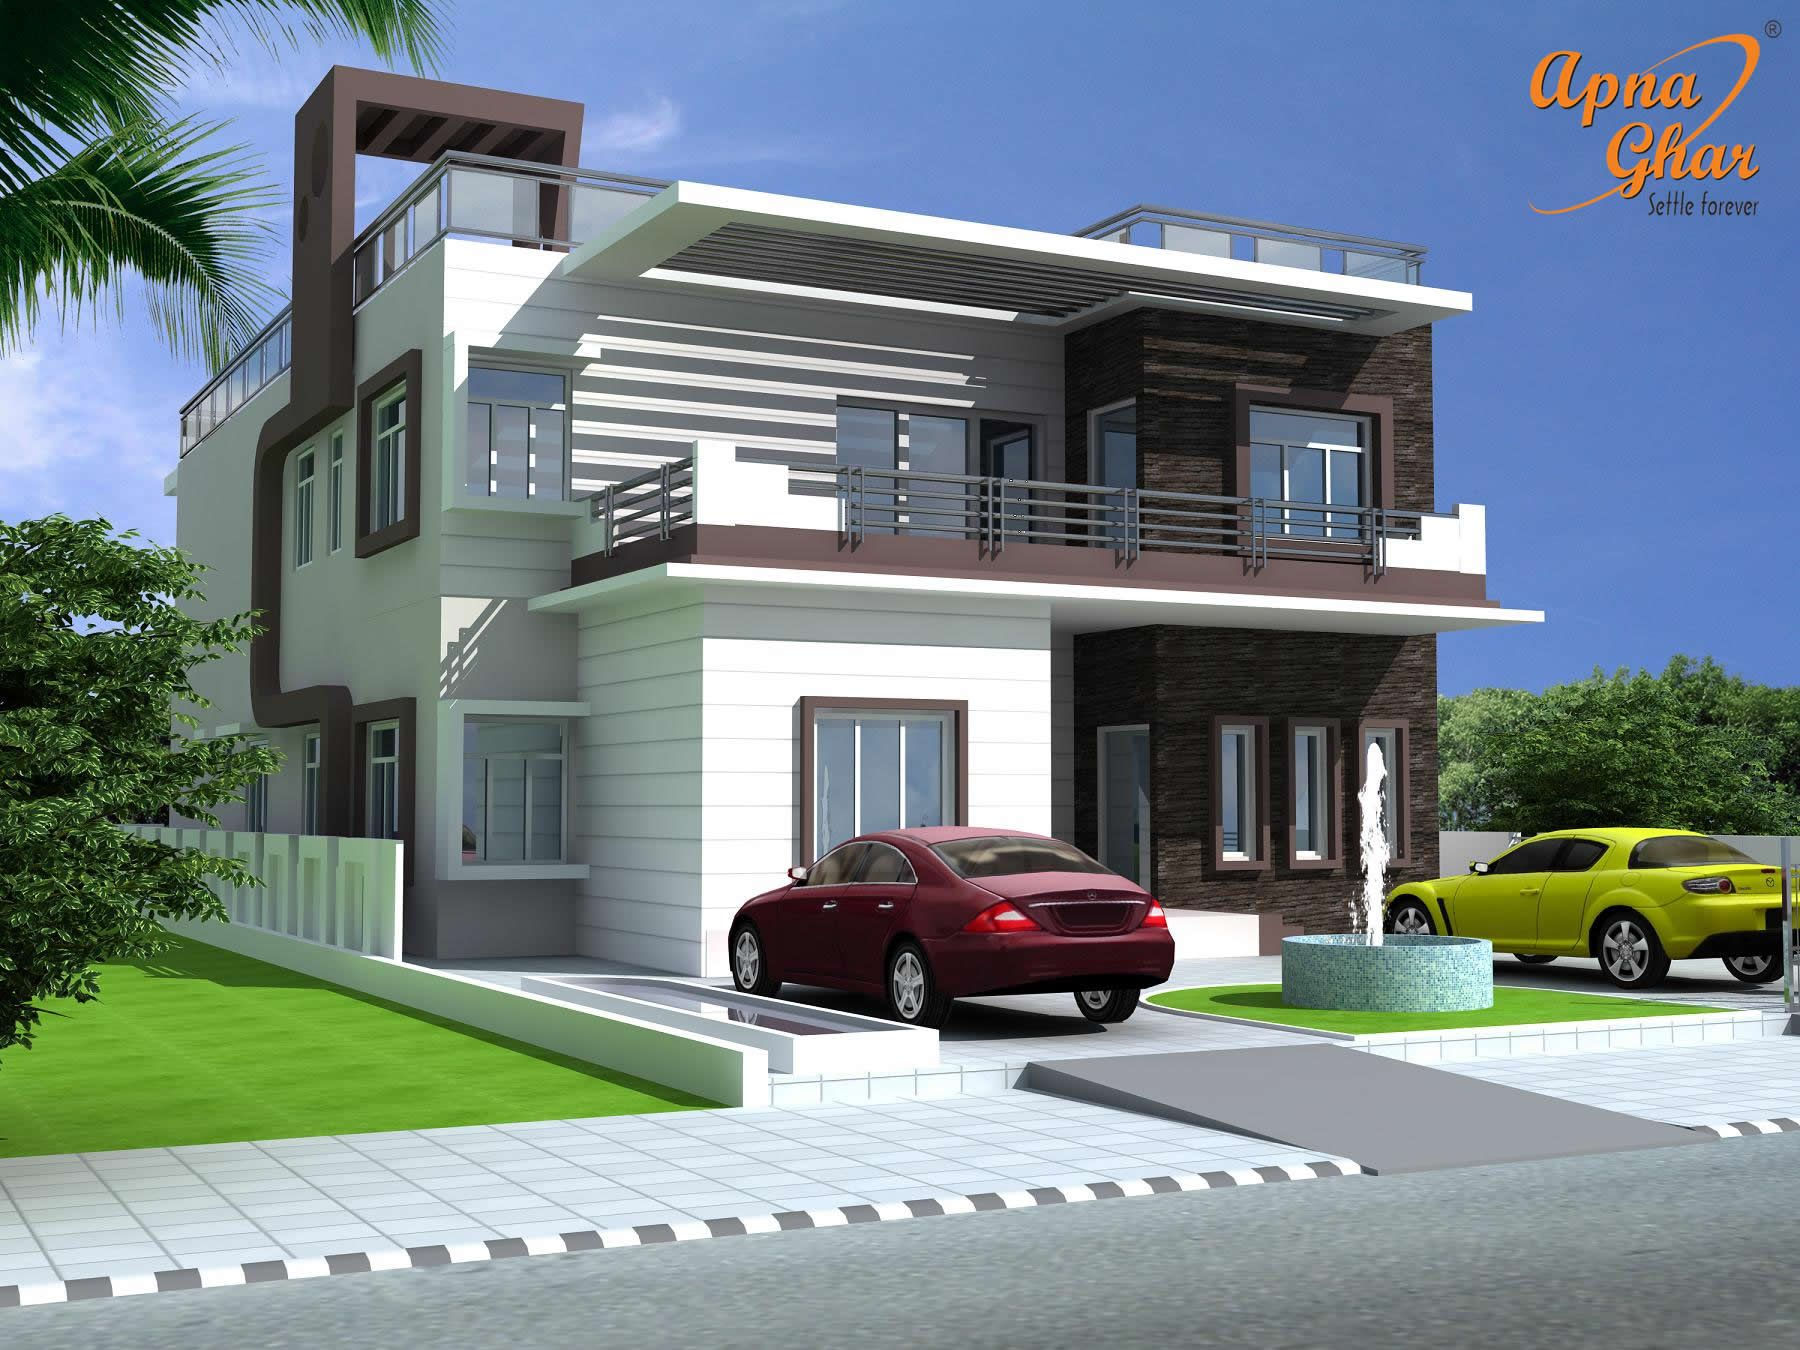 6 bedrooms duplex house design in 390m2 13m x 30m click for Plan of duplex building